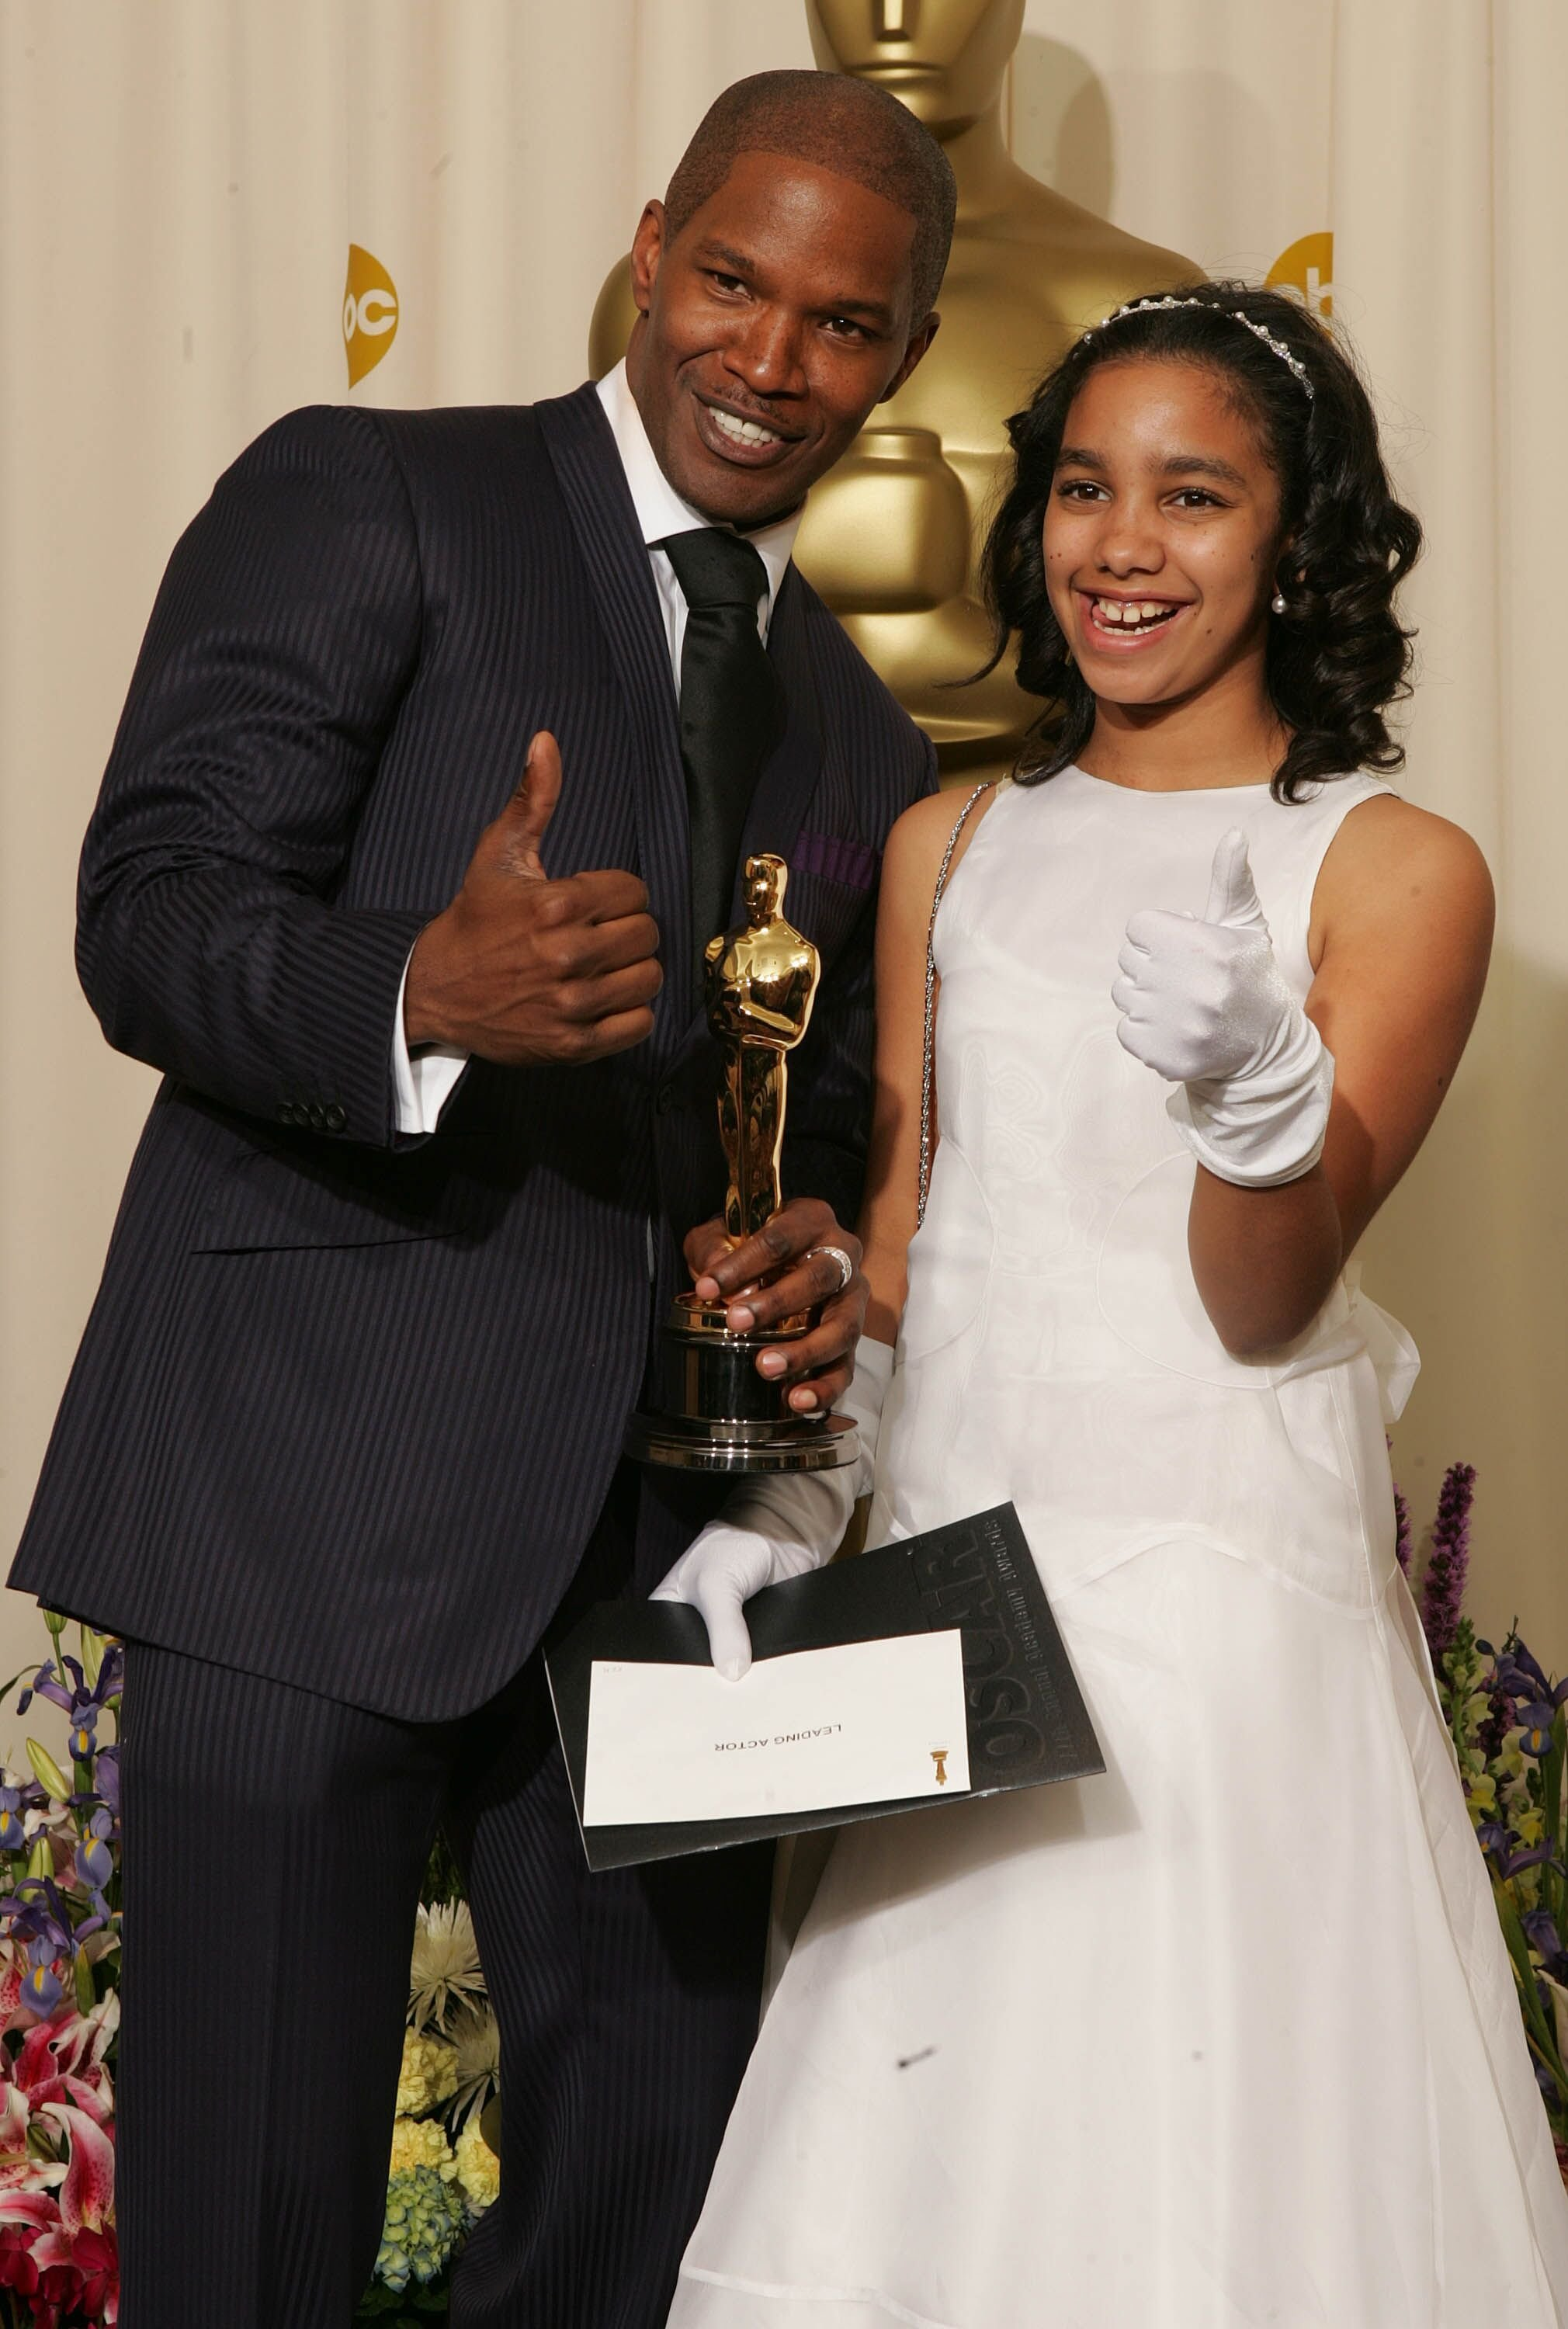 """Jamie Foxx poses with his """"Best Actor in a Leading Role"""" award for """"Ray"""" with his daughter Corrine Marie Foxx backstage during the 77th Annual Academy Awards in 2005 